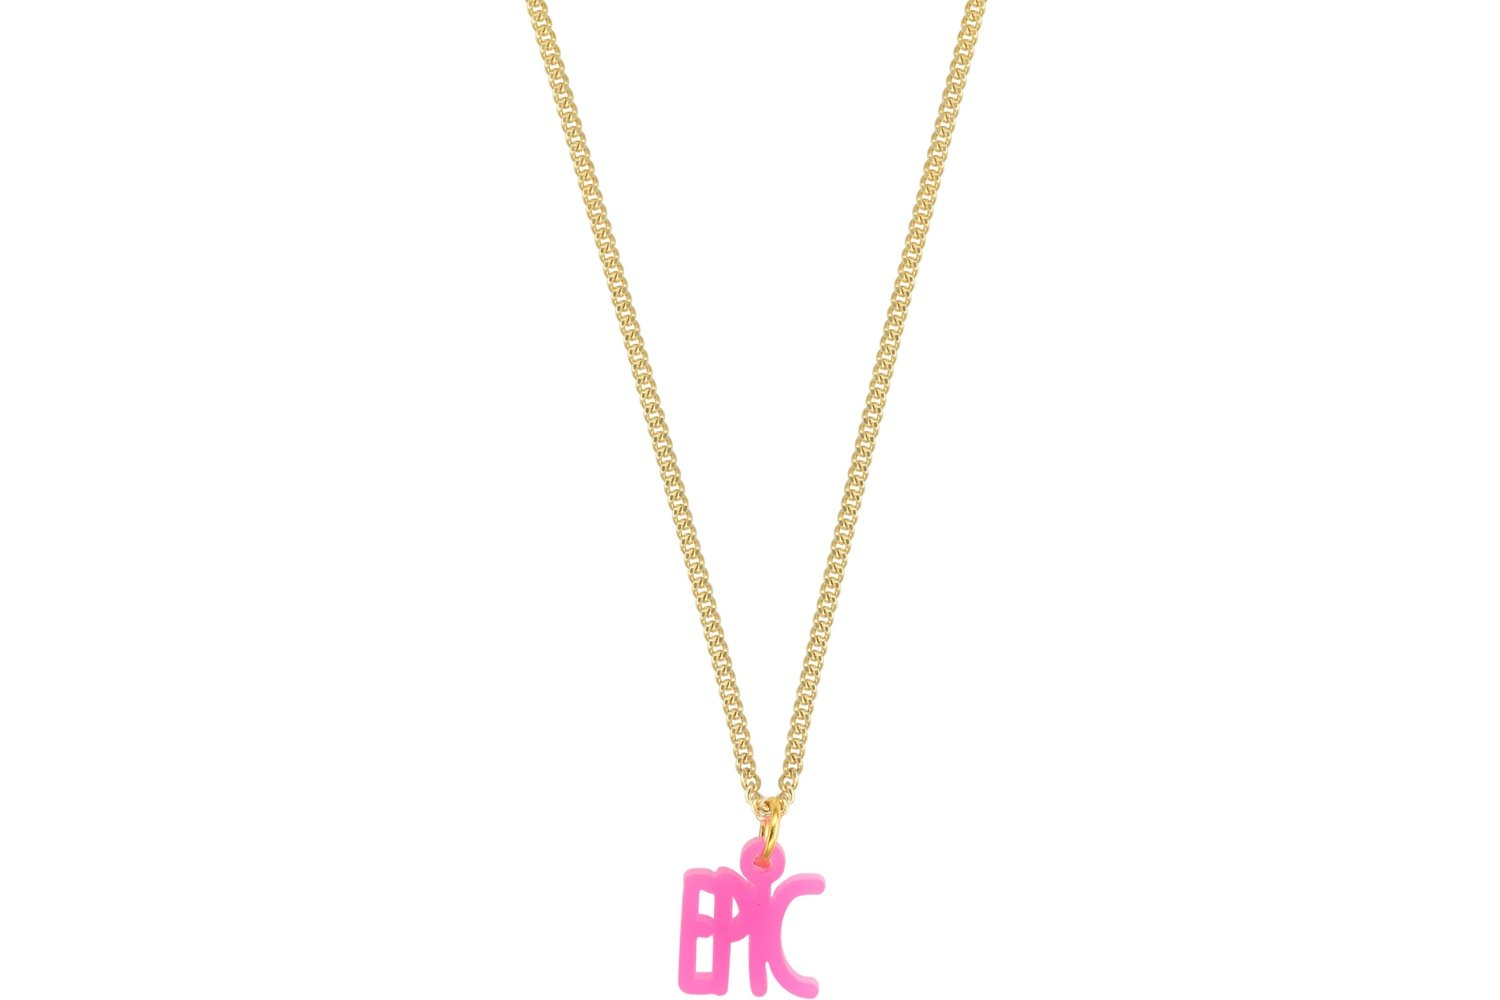 Declaration Style 1 with Chain Necklace